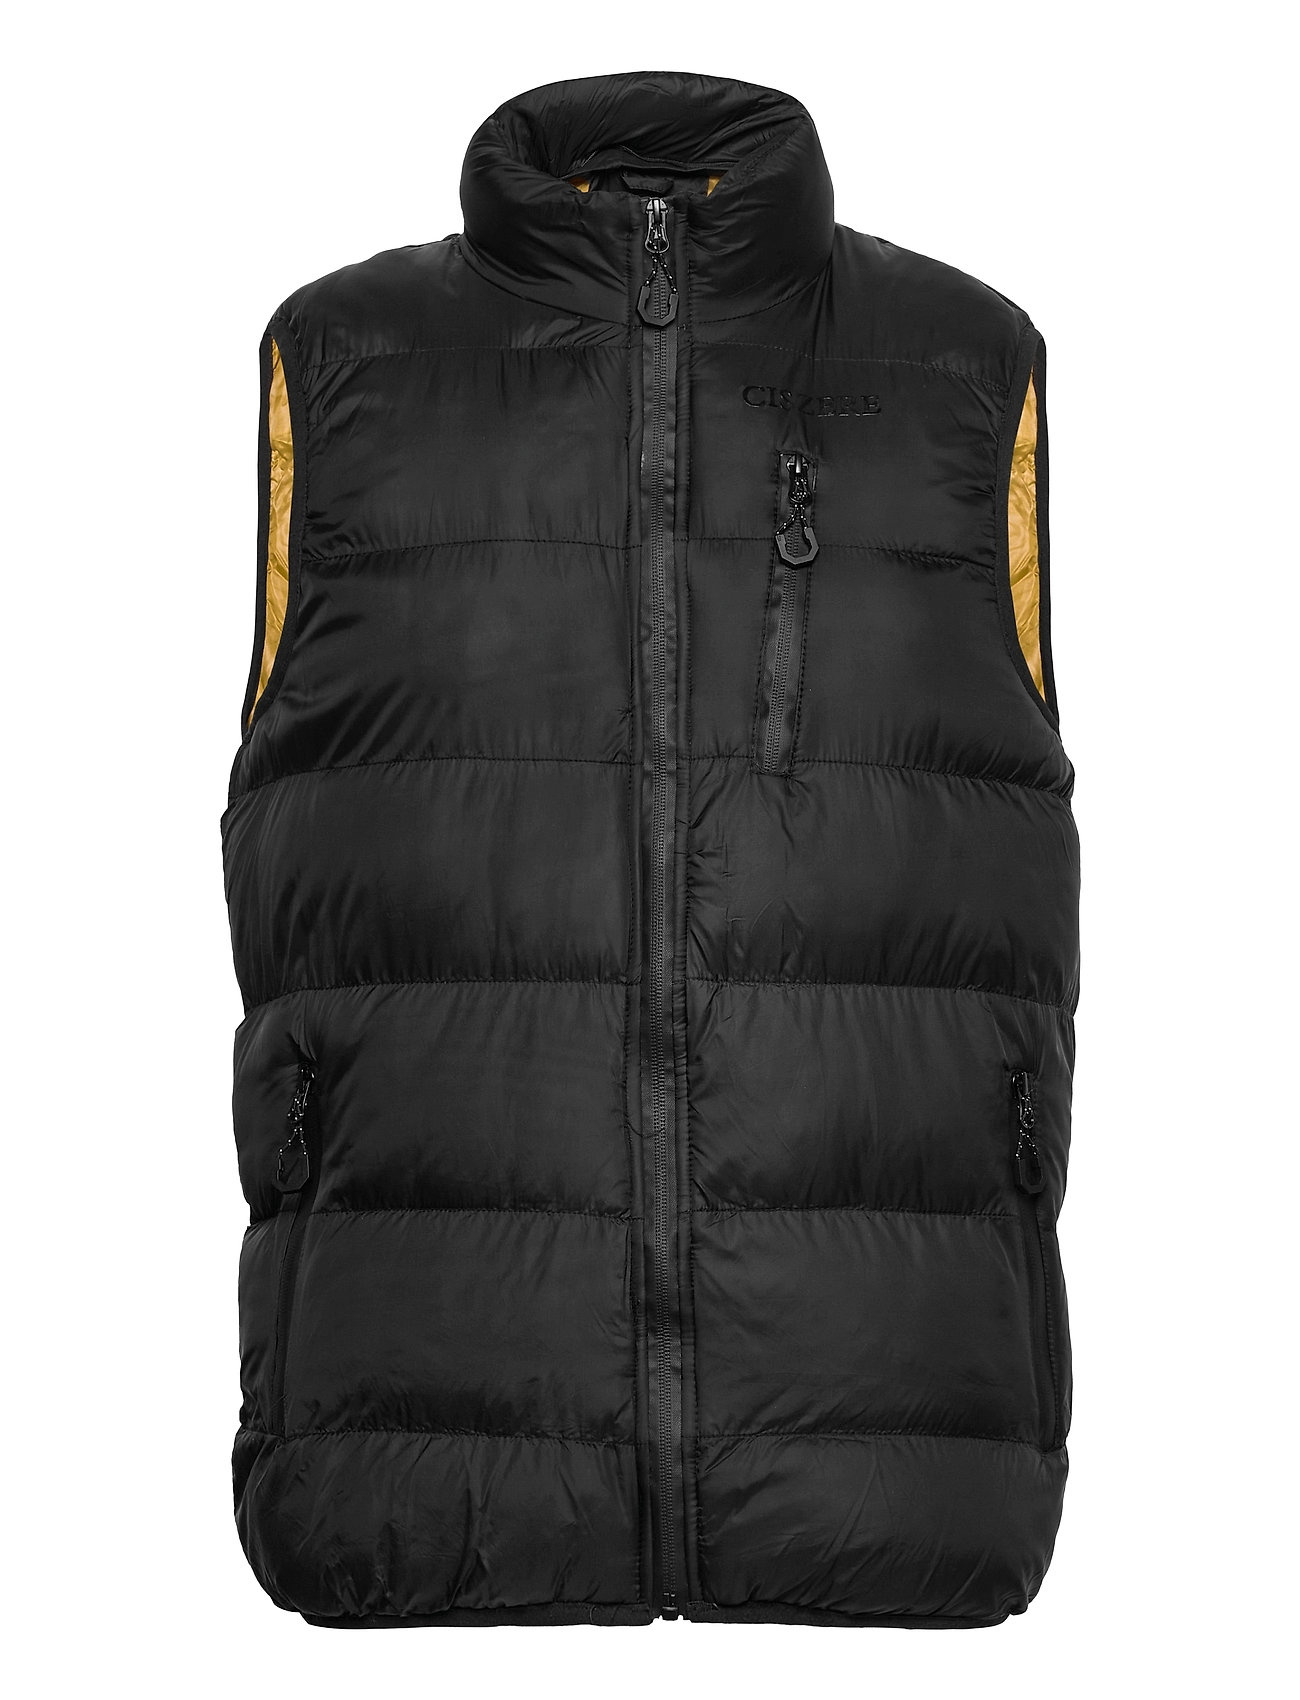 Image of Taribo West Vest Sort Ciszere (3480589905)